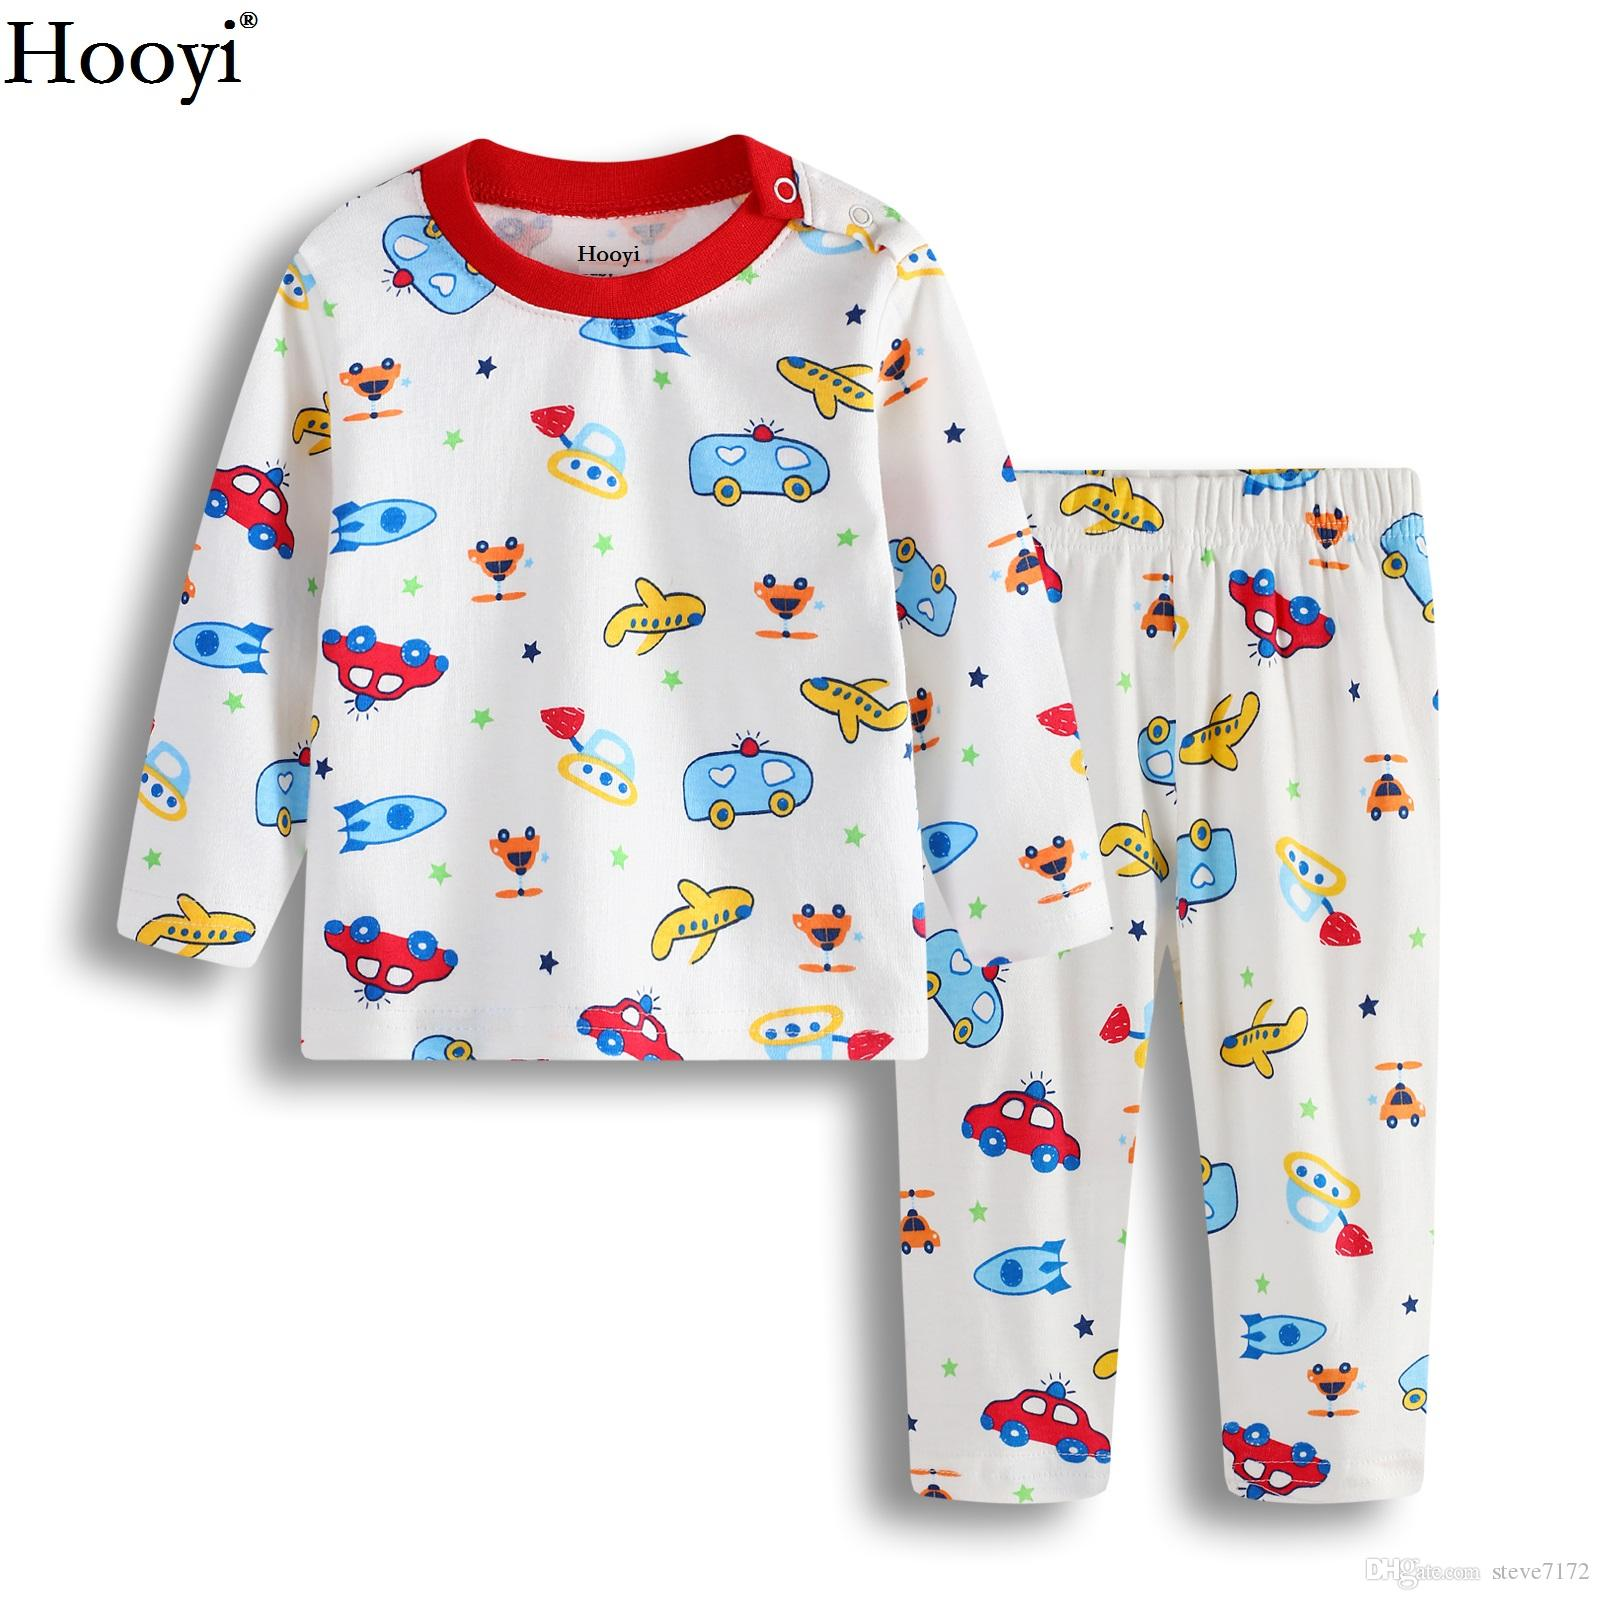 e4a5ca32f16d78 Hooyi Fashion Baby Boys Pajamas Clothes Set Newborn Jumpsuist Baby Sleepwear  100% Cotton Cartoon Planes Bebe Clothing Hot Sale 0 24Months Kids Pajamas  Cheap ...